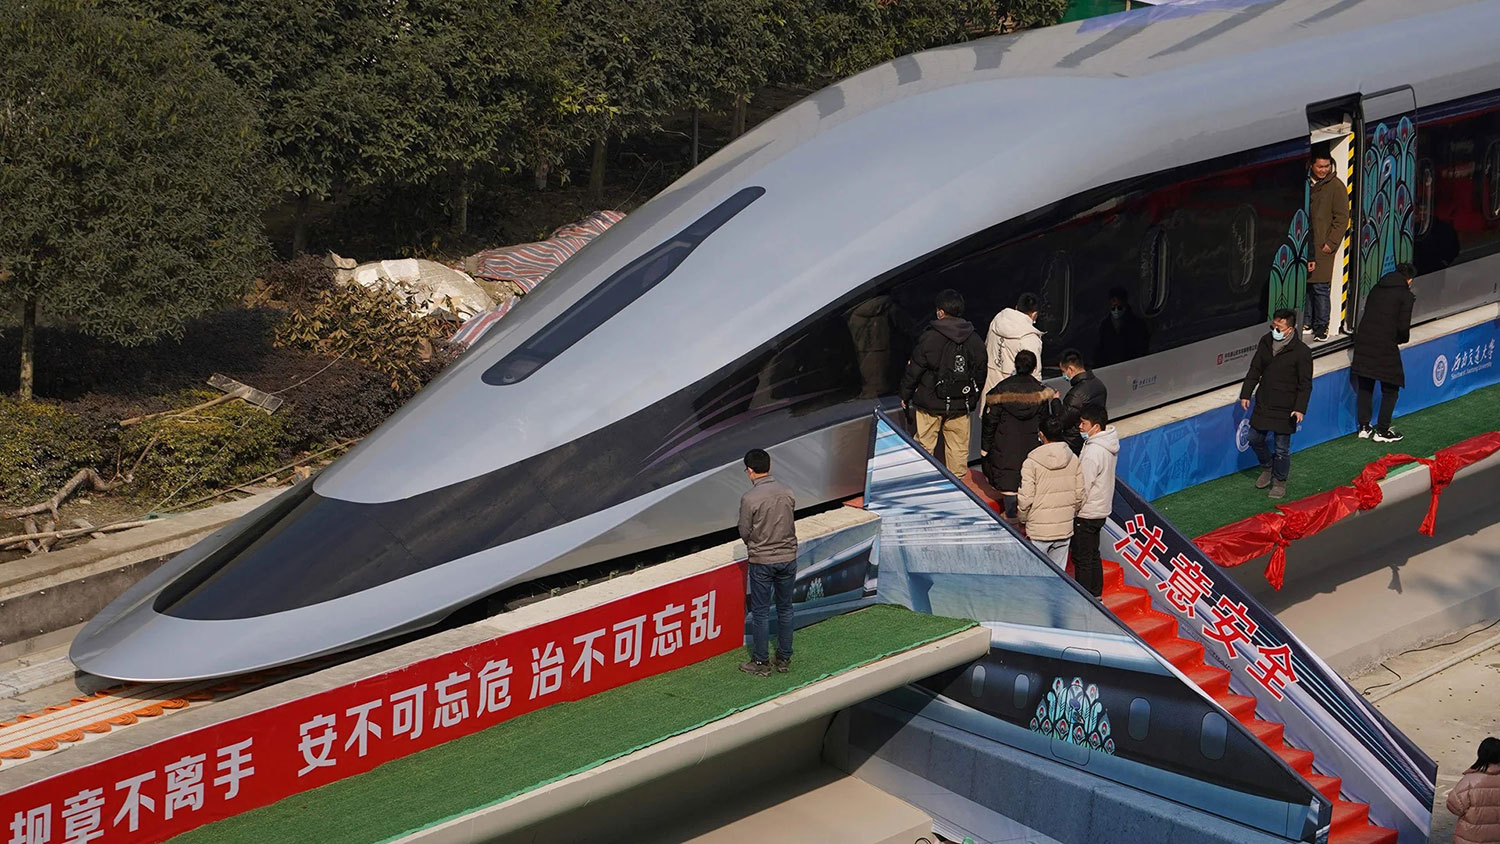 China unveils a new high-speed Maglev train prototype that can reach 620 km/h